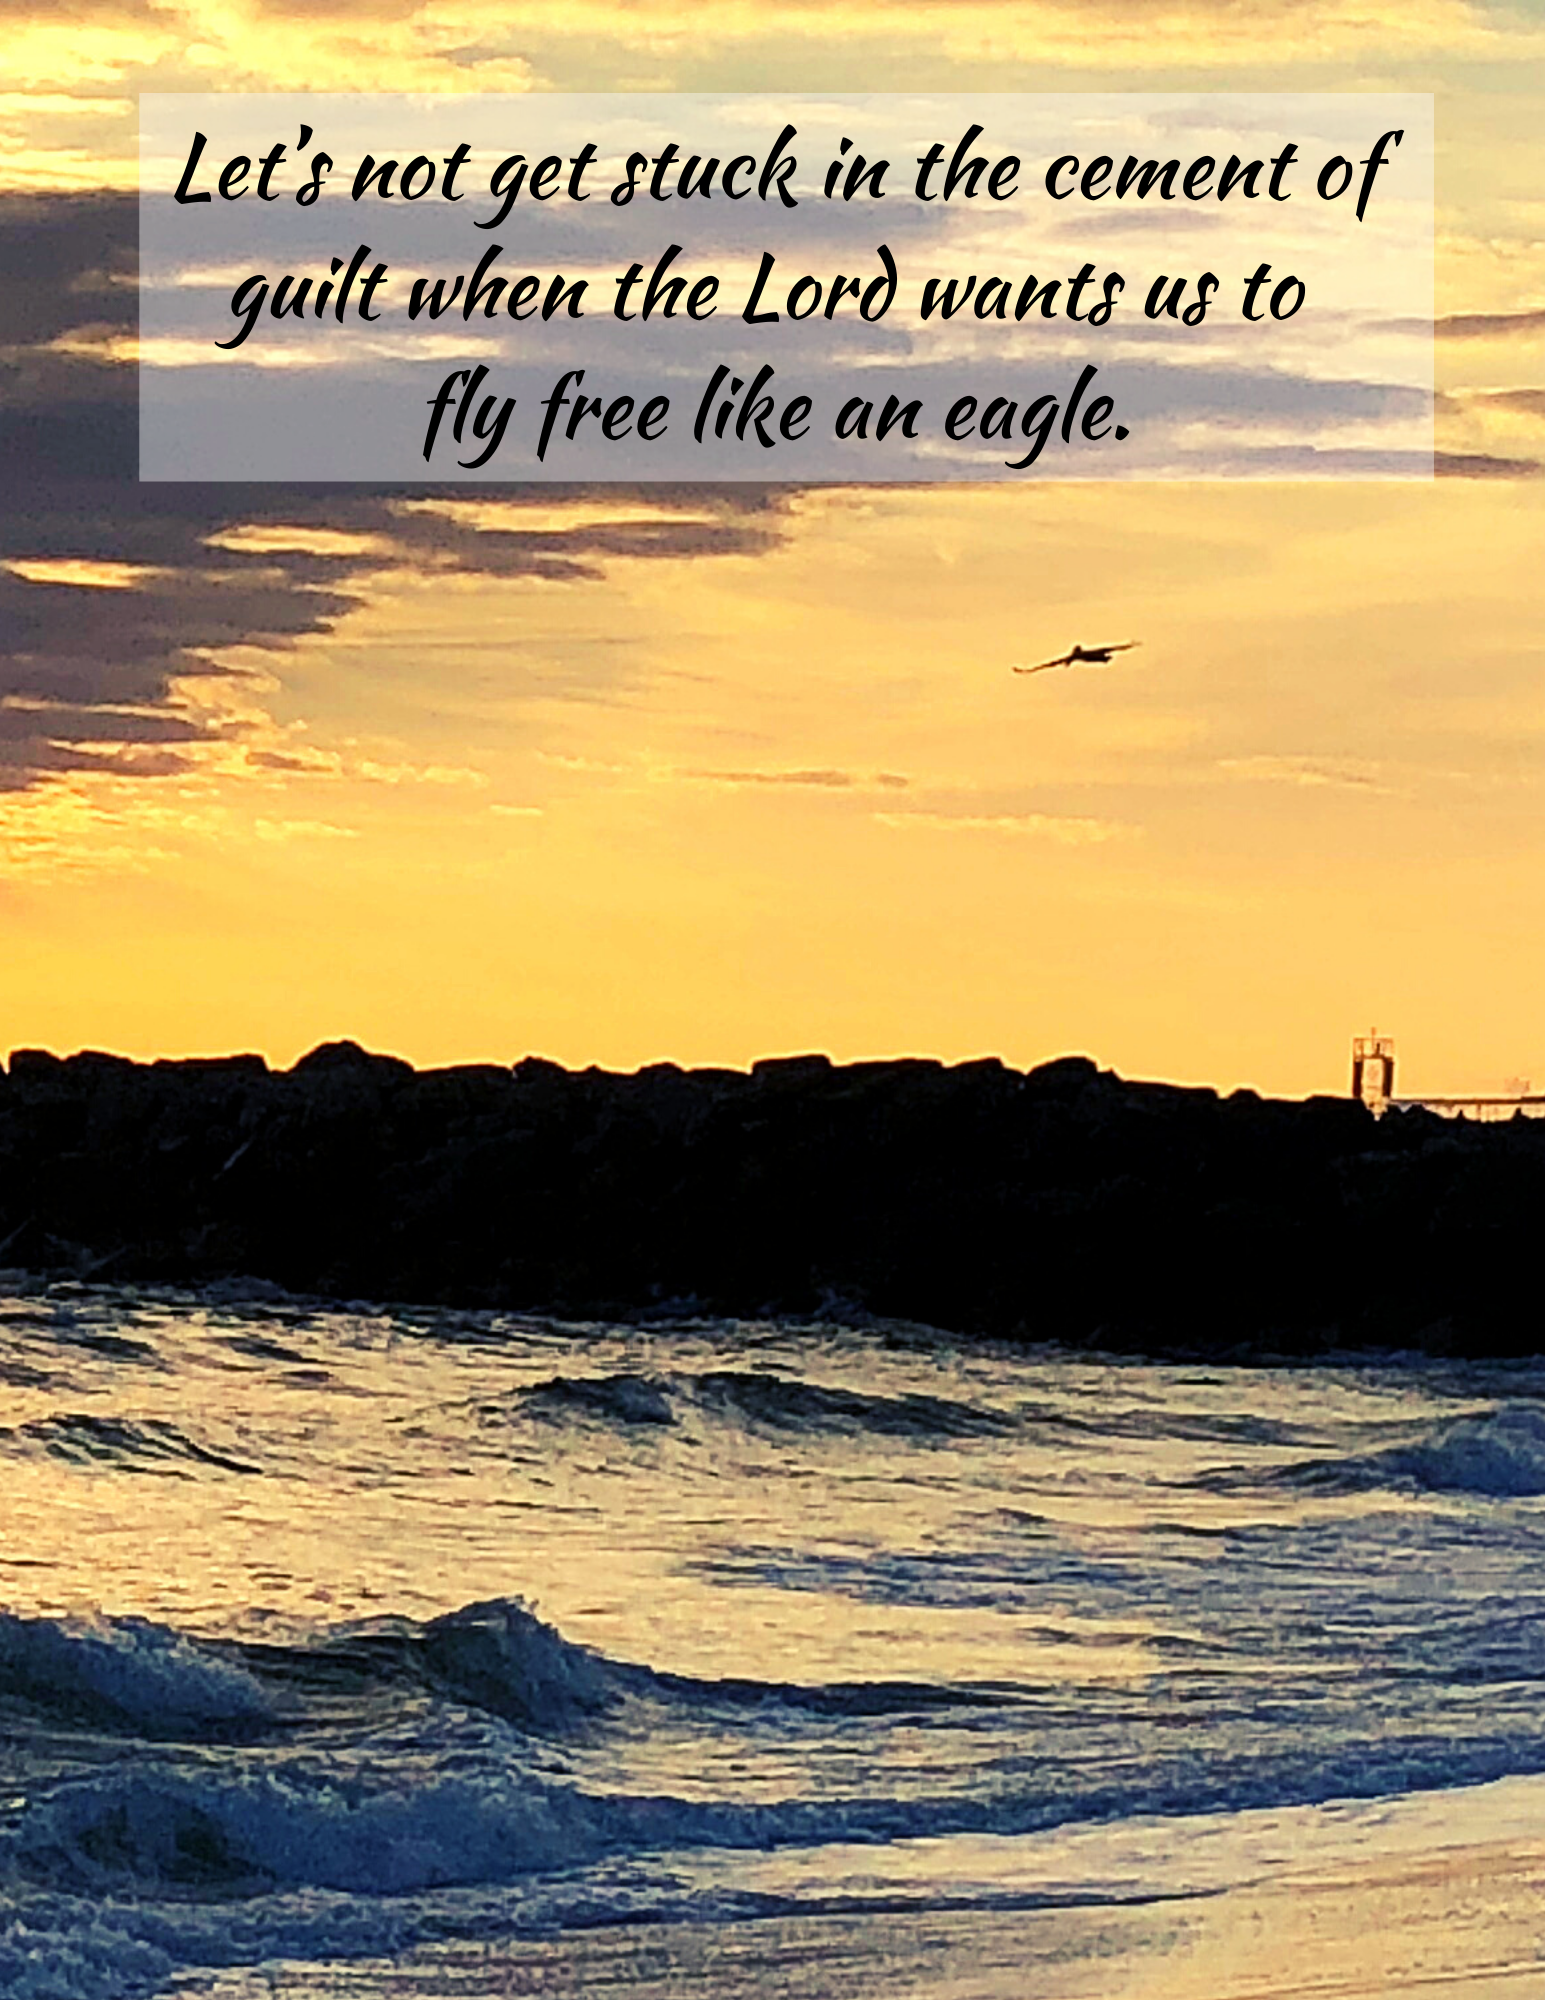 Let's not get stuck in the cement of guilt when the Lord wants us to fly free like an eagle.-4